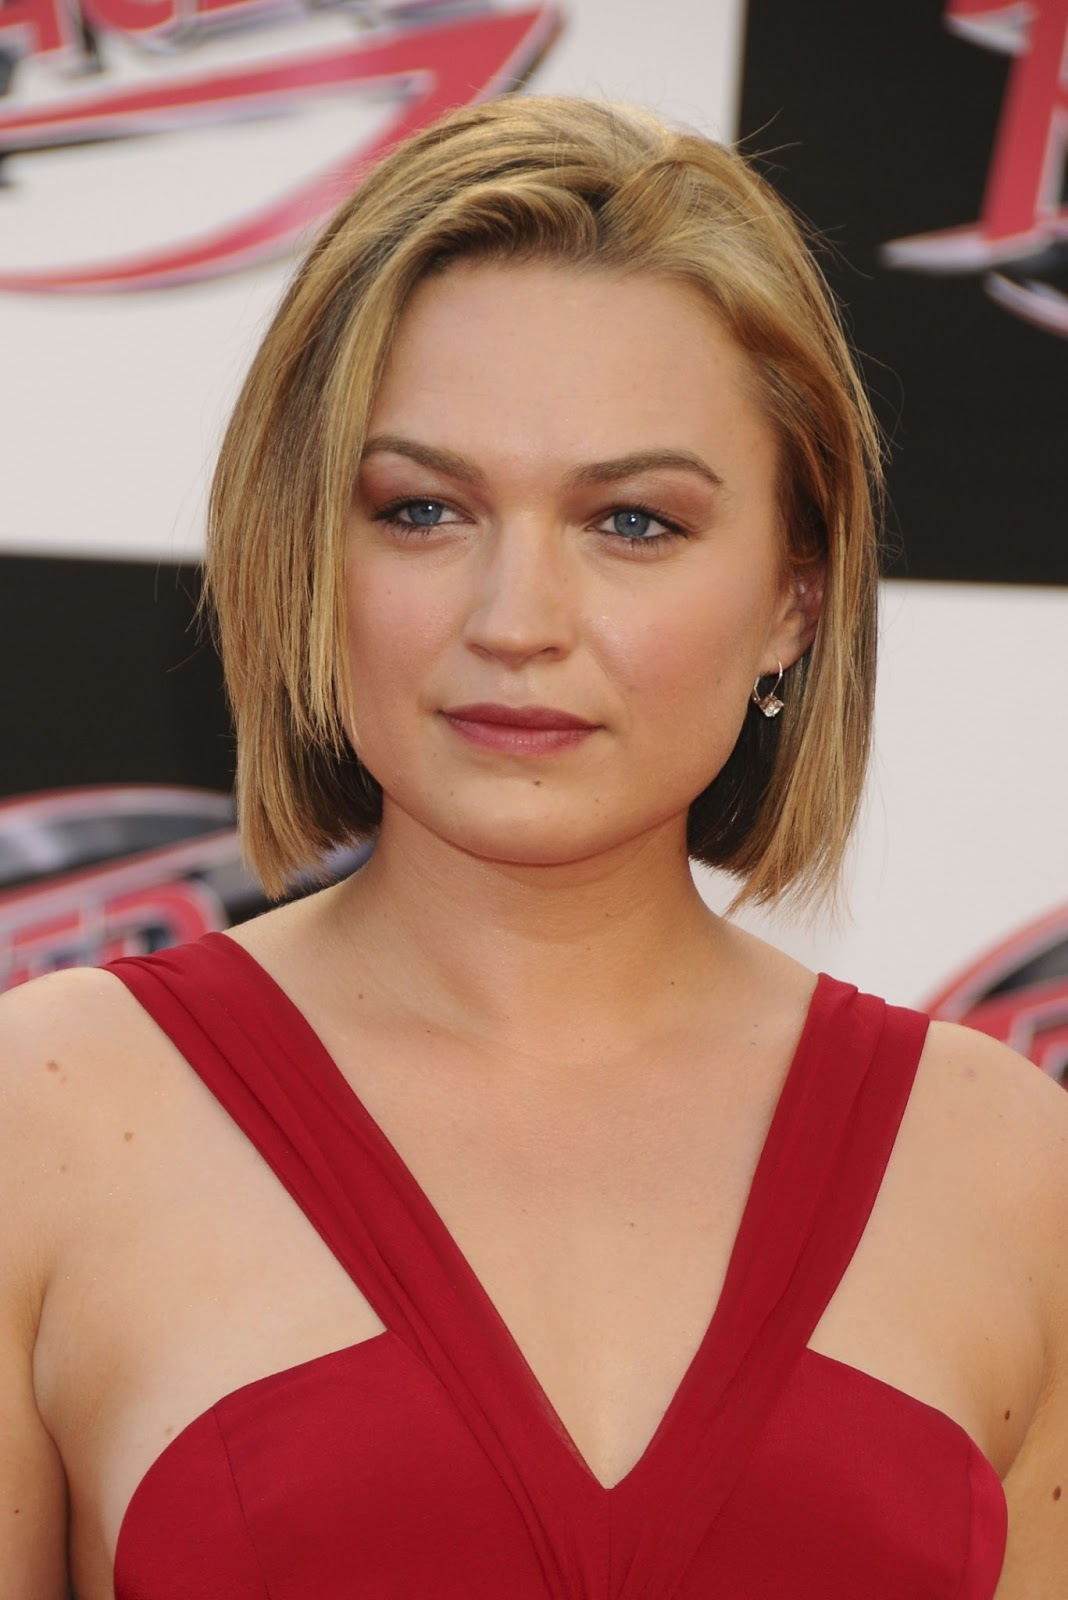 Sophia Myles Hot Photo Images And Hd Wallpapers -4205